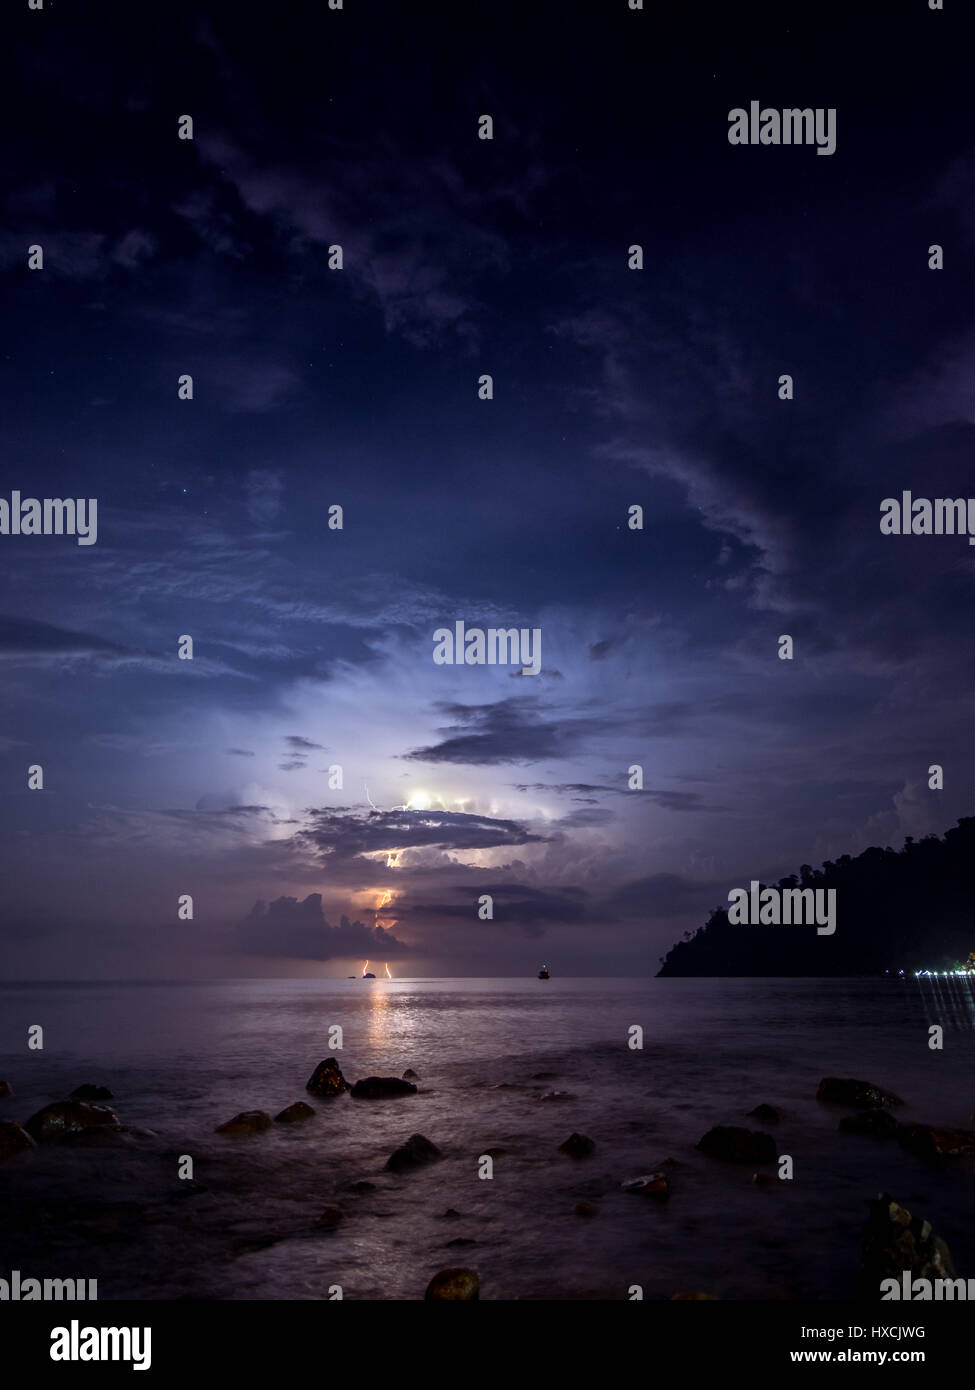 A lightening storm lighting up the night sky in the distance as viewed from the ABC beach on Tioman Island, Malaysia. - Stock Image